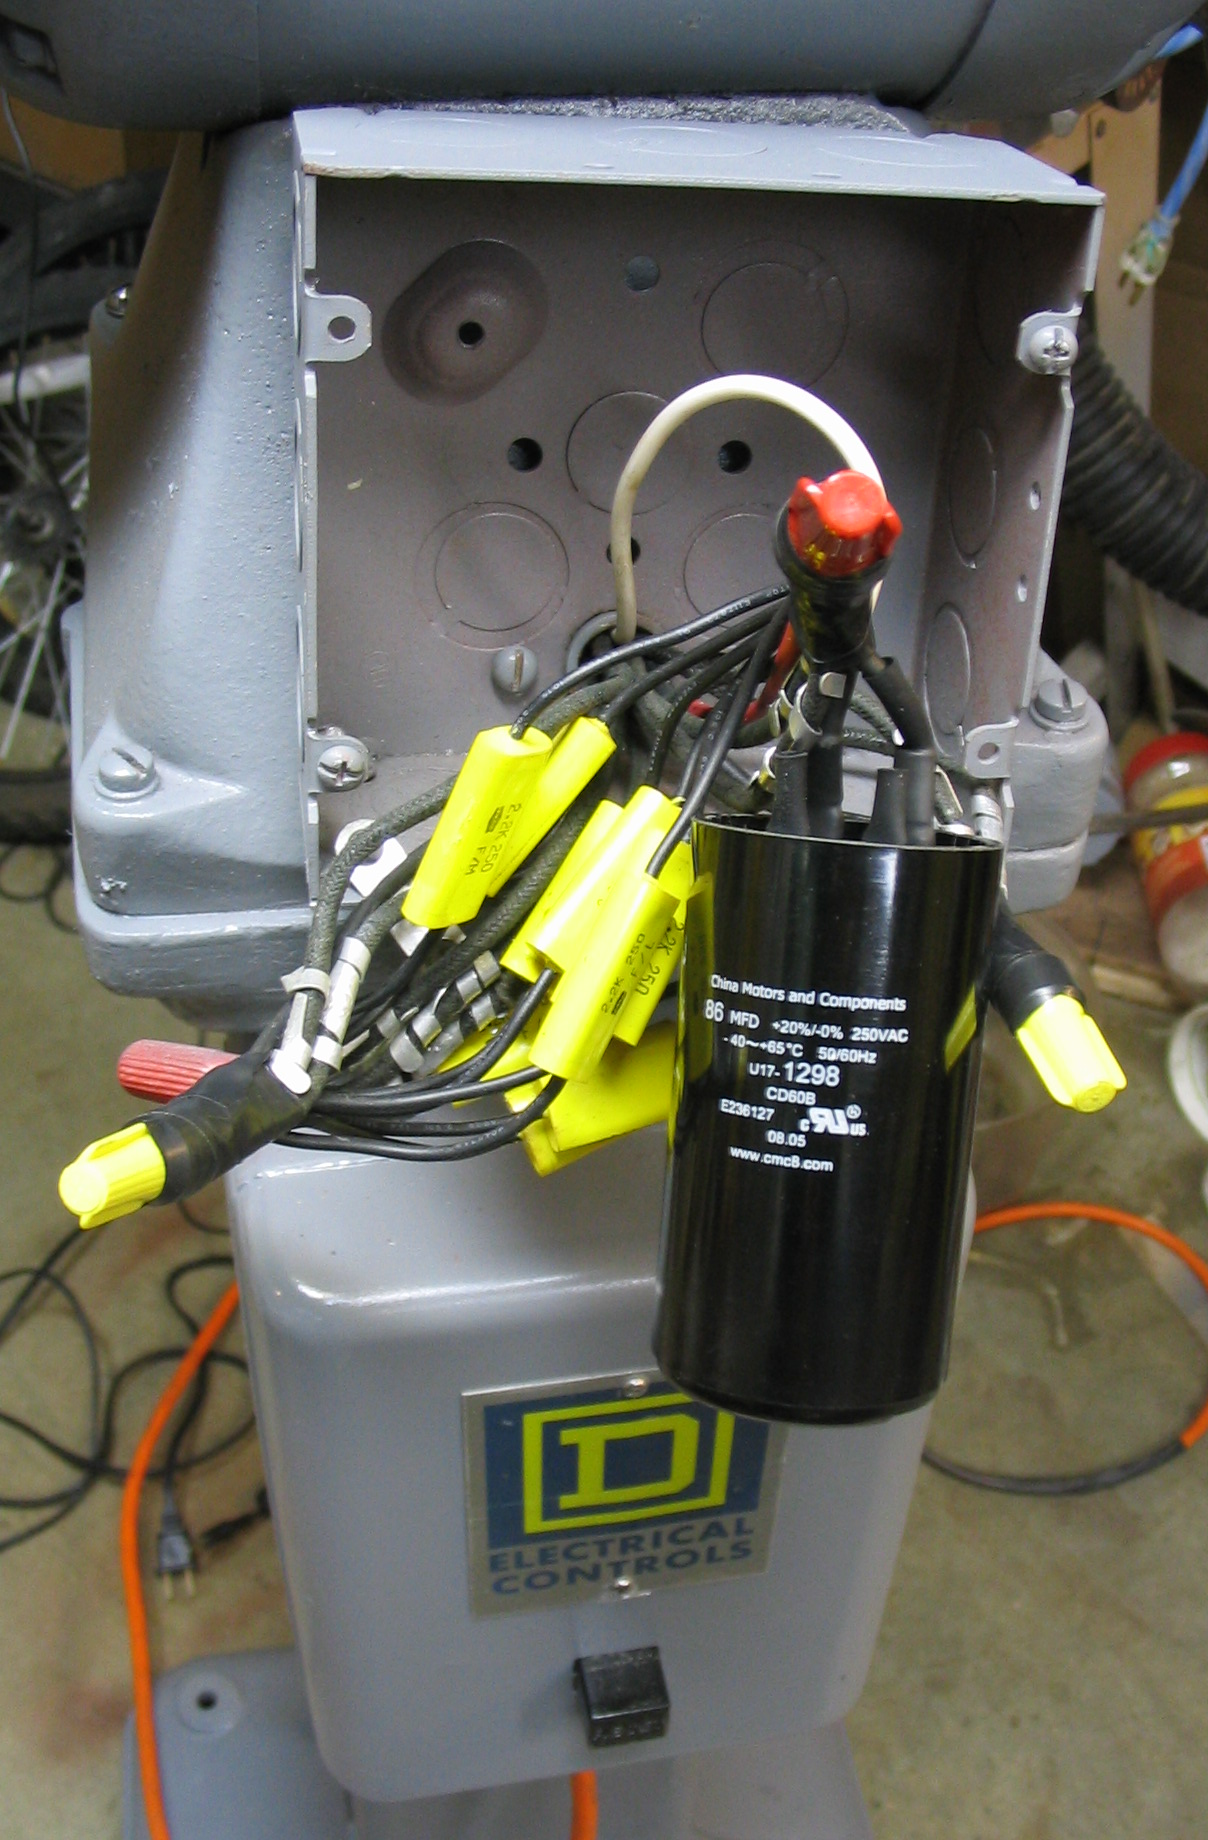 Final start capacitor